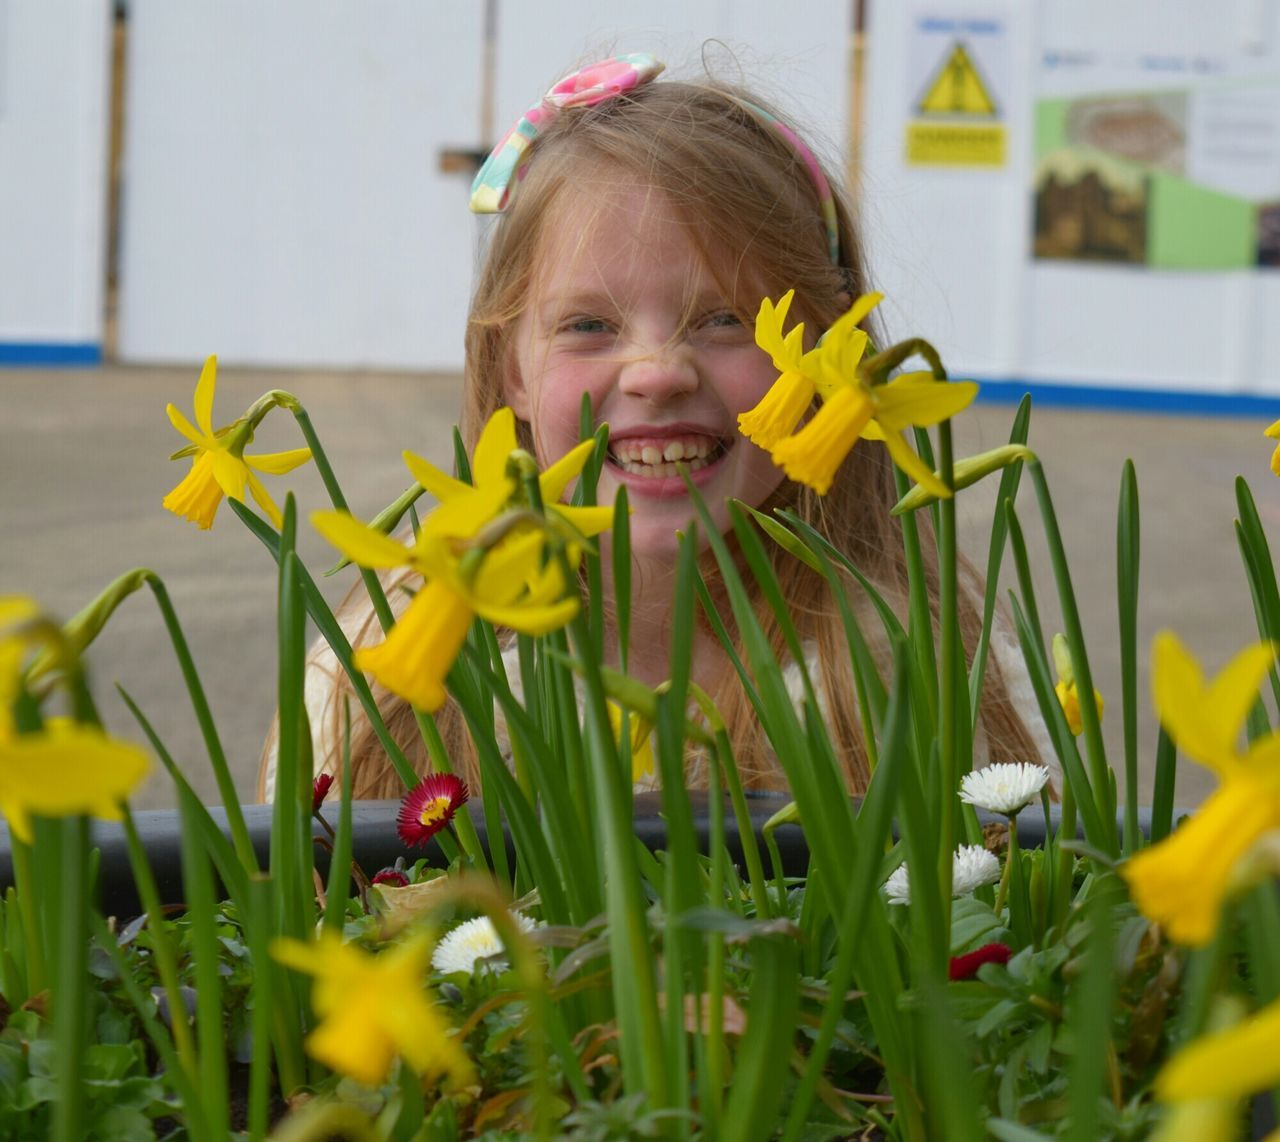 Our Emily Girl Child Laughter Hull Yorkshire Daffodils Street City Of Culture CoC2017 HullYes Spring City Of Culture 2017 Hull 2017 Urban Spring Fever